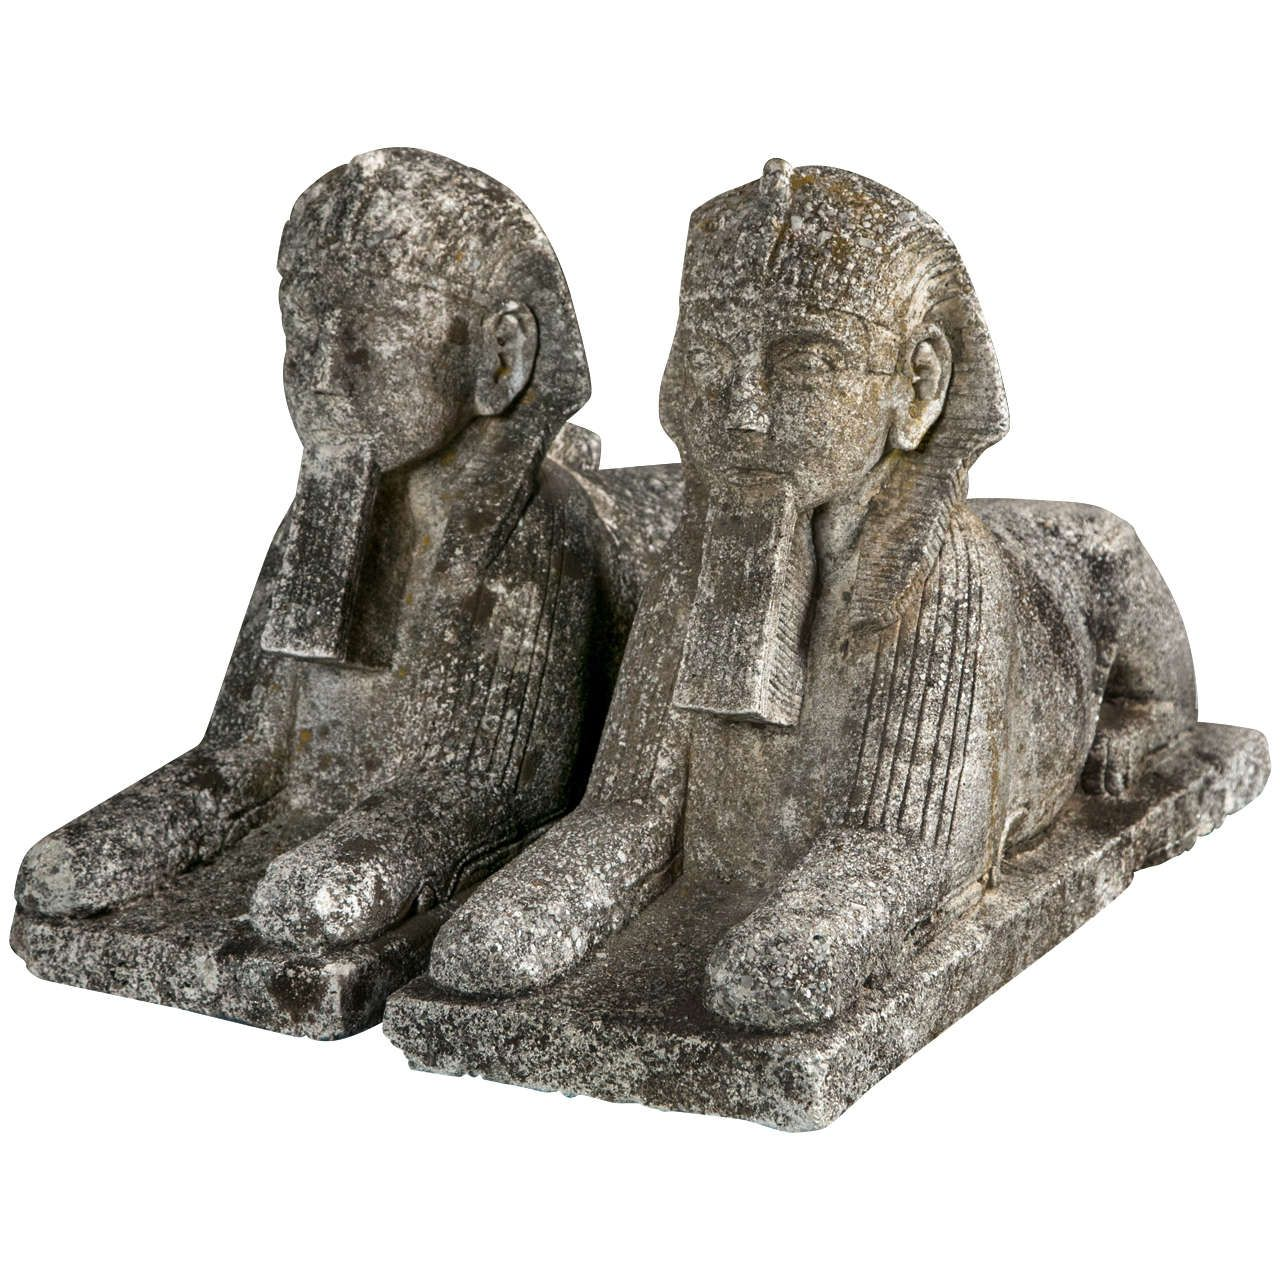 A Pair Of Cast Stone Sphinx Garden Ornaments. HEIGHT: 17.5 In. (44